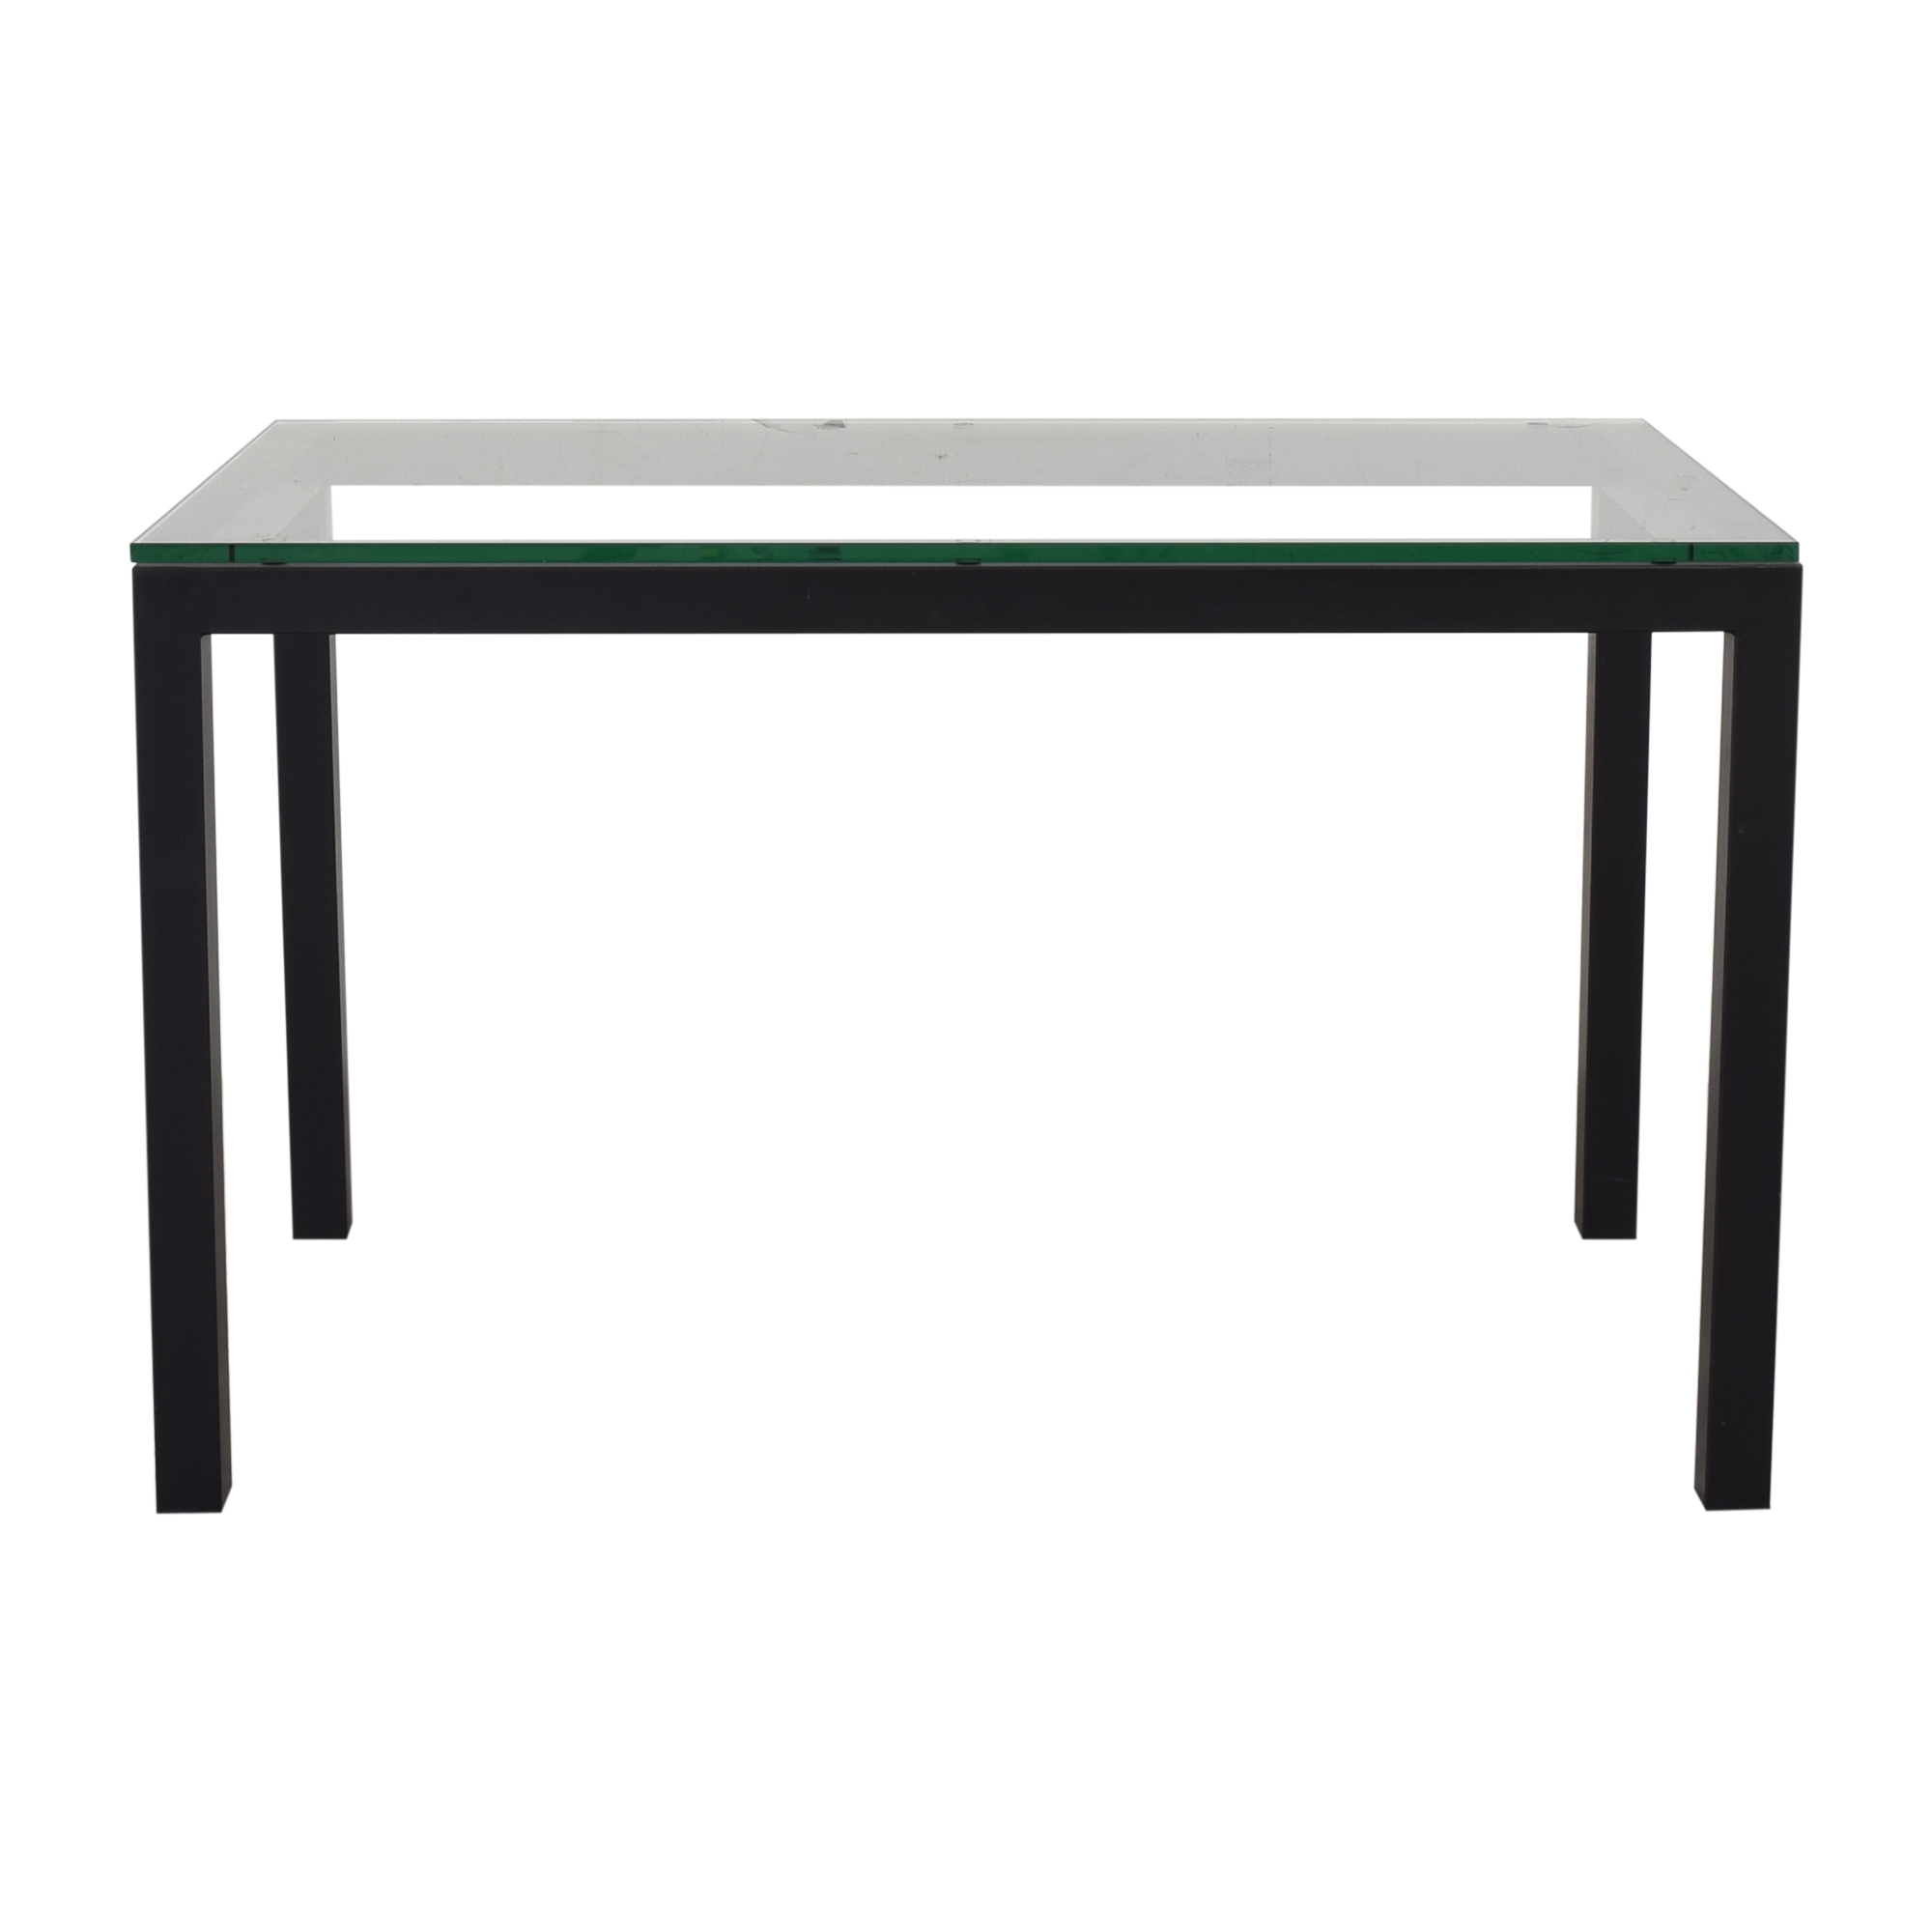 buy Crate & Barrel Crate & Barrel Glass and Steel Parsons Table online